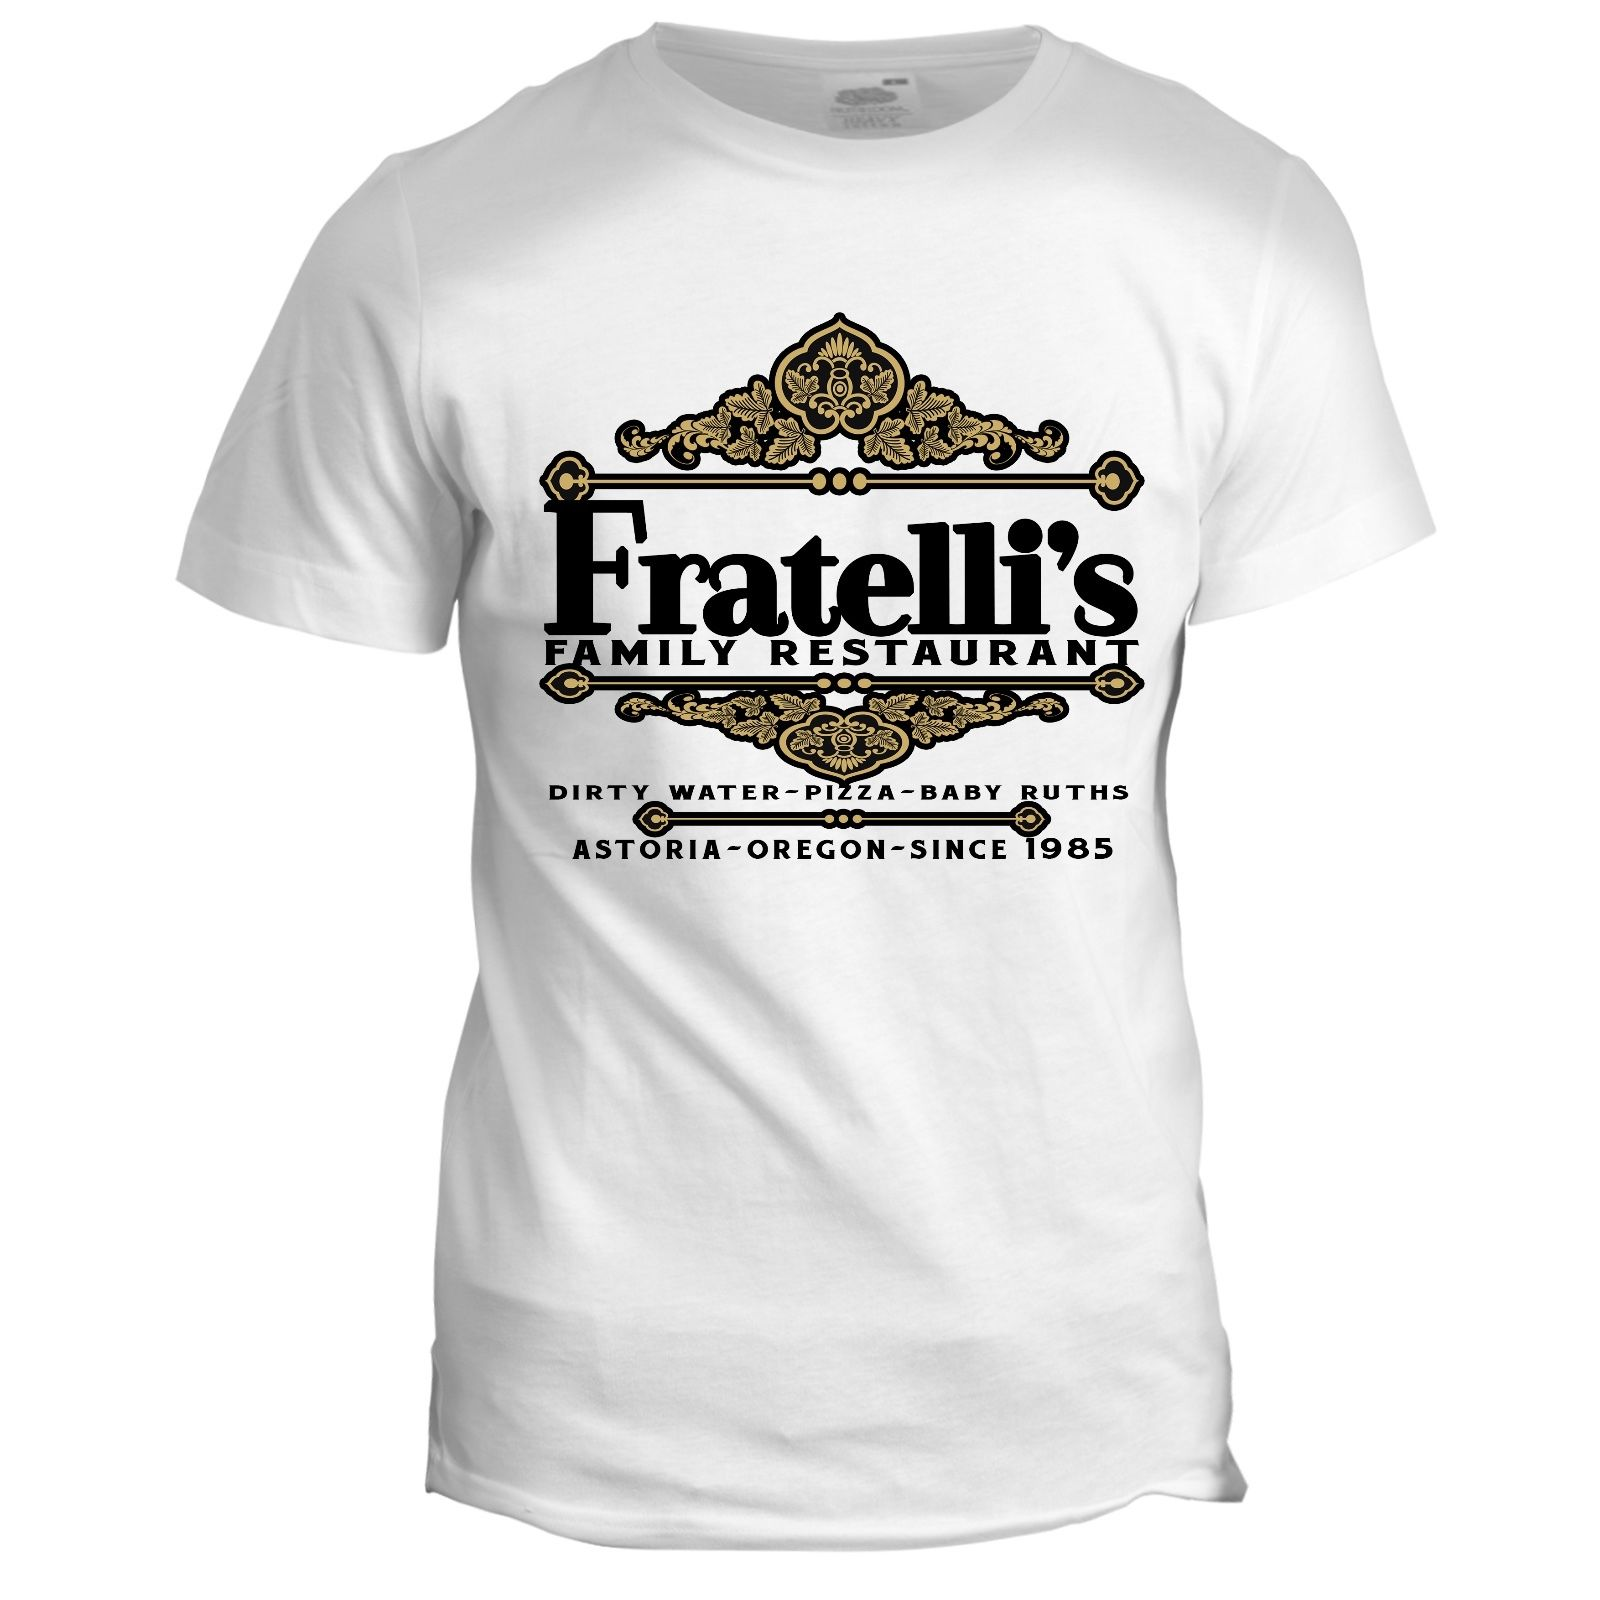 Fratelli's Restaurant Inspired The Goonies 80s Retro Italian Movie Film T Shirt New T Shirts Funny Tops Tee image